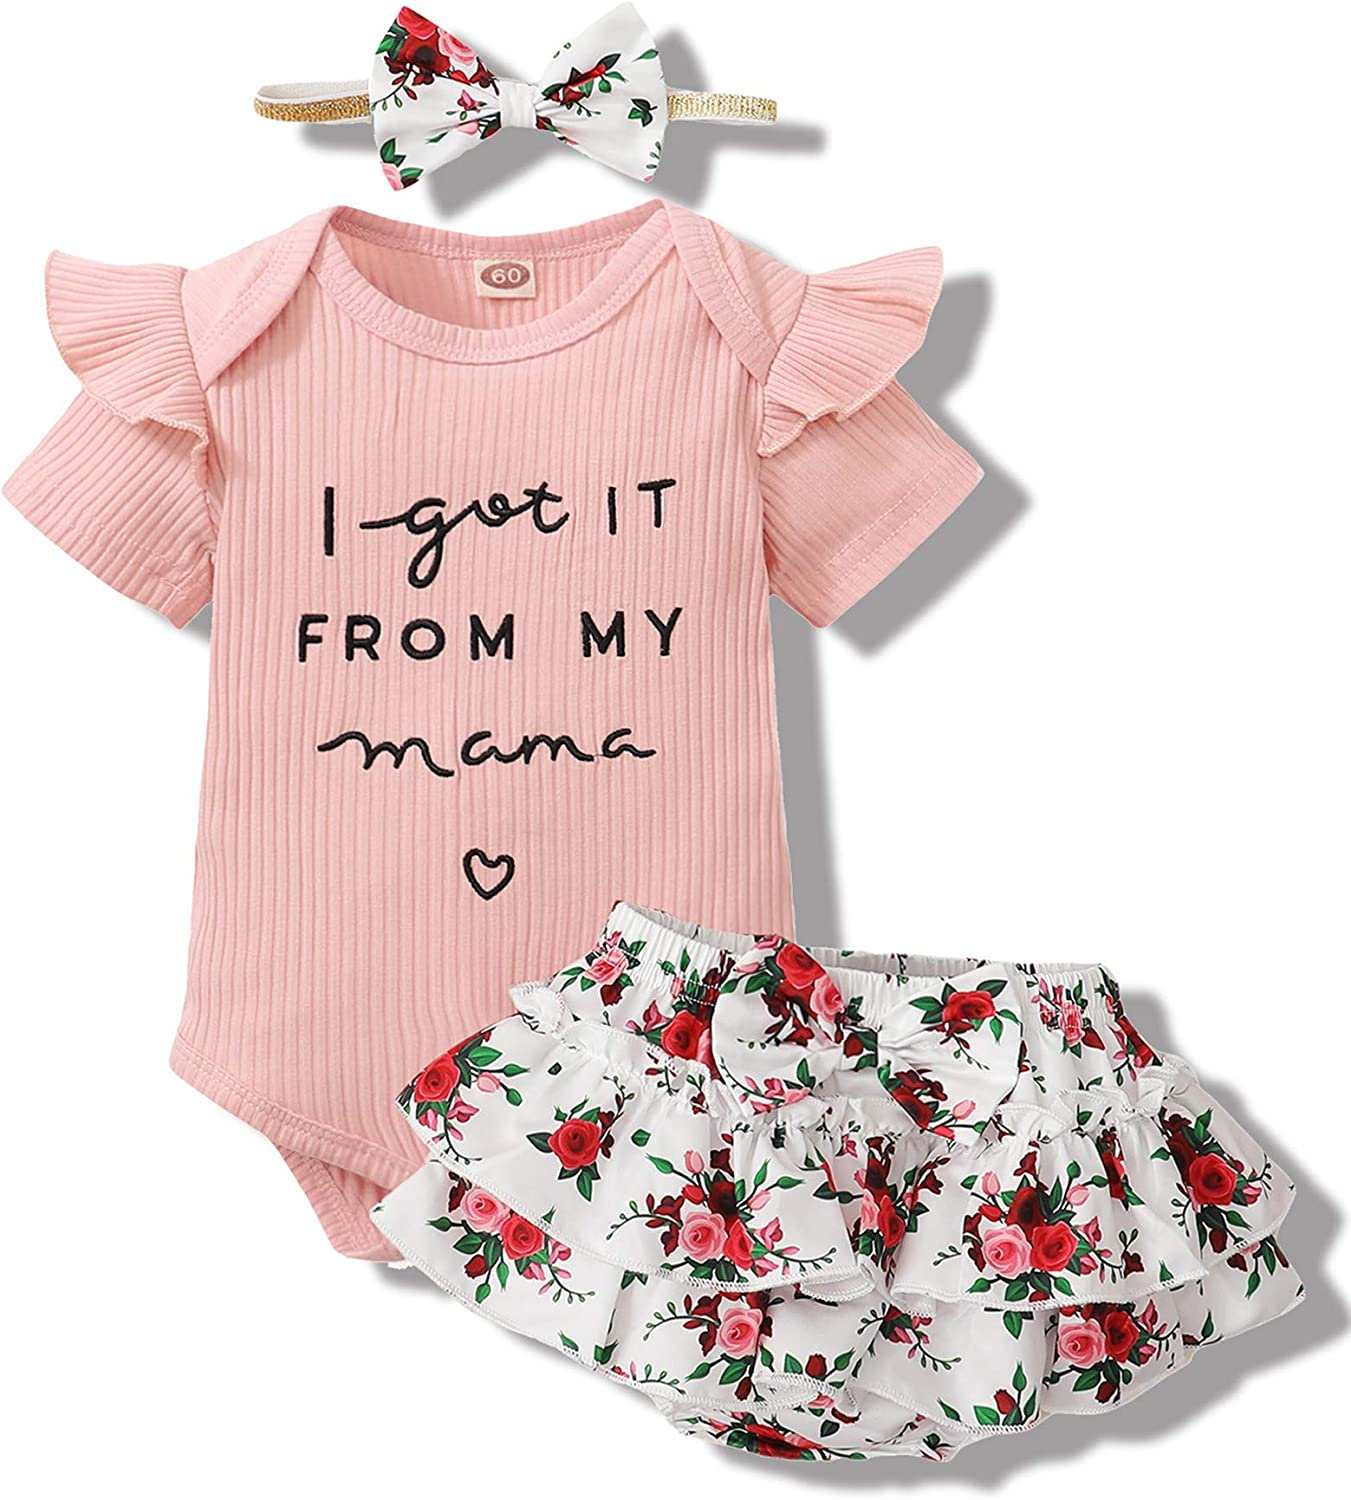 Newborn Infant Baby Girl Clothes Romper Shorts Set Floral Summer Outfits Cute Baby Clothes Girl